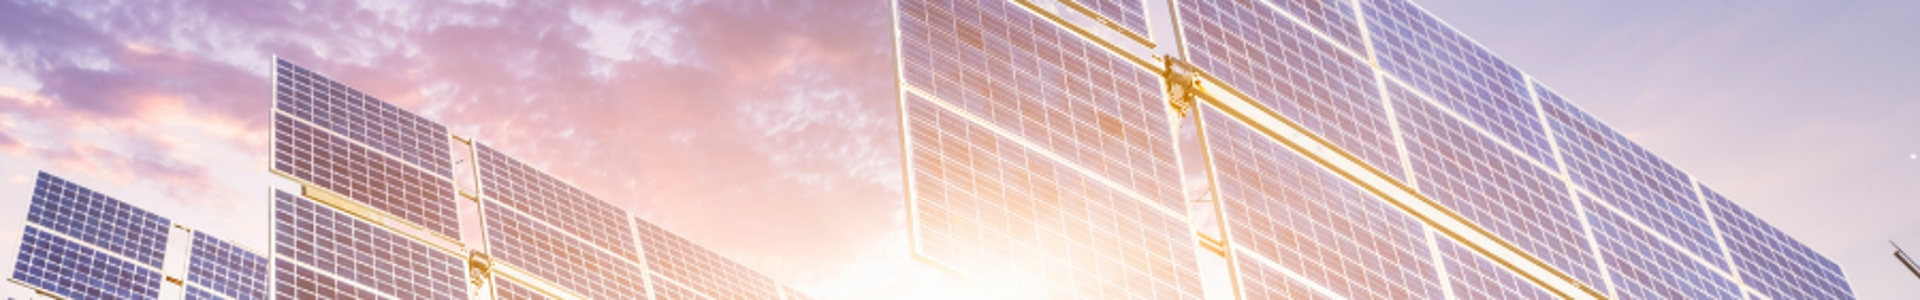 Businesses using solar to generate energy.